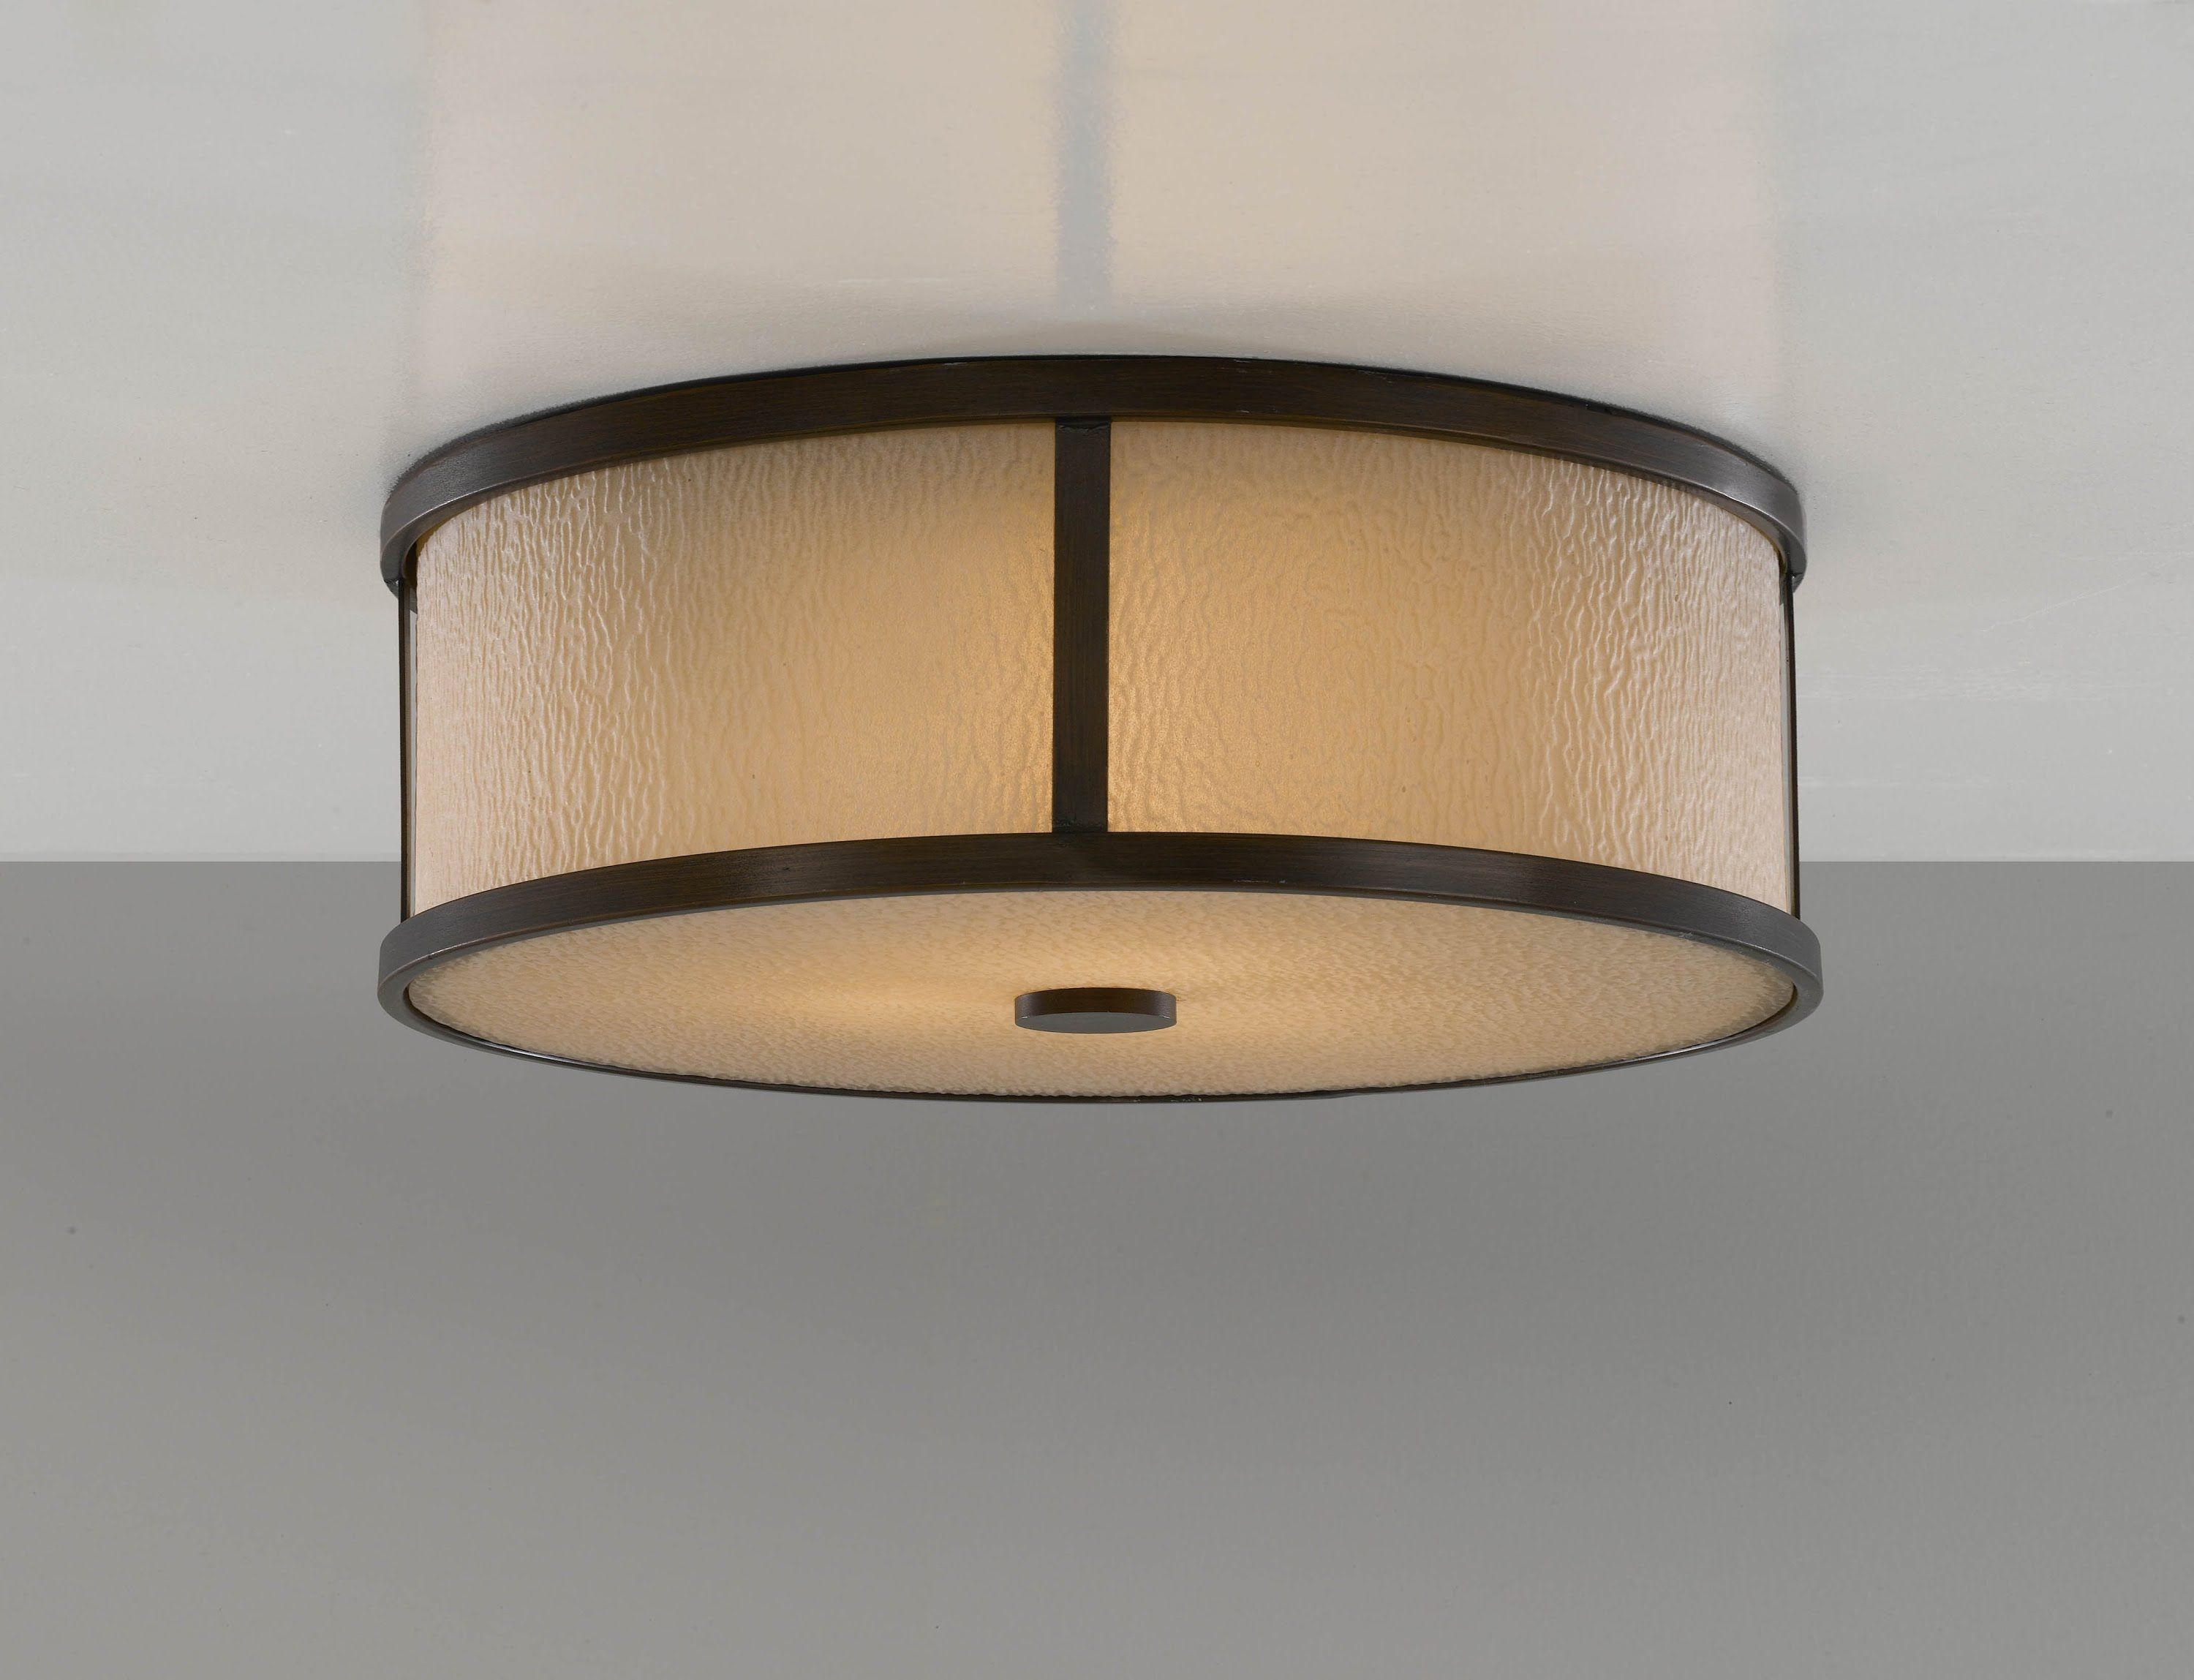 Flush Mount Ceiling Lights # Flush Mount Ceiling Light Bulb ...